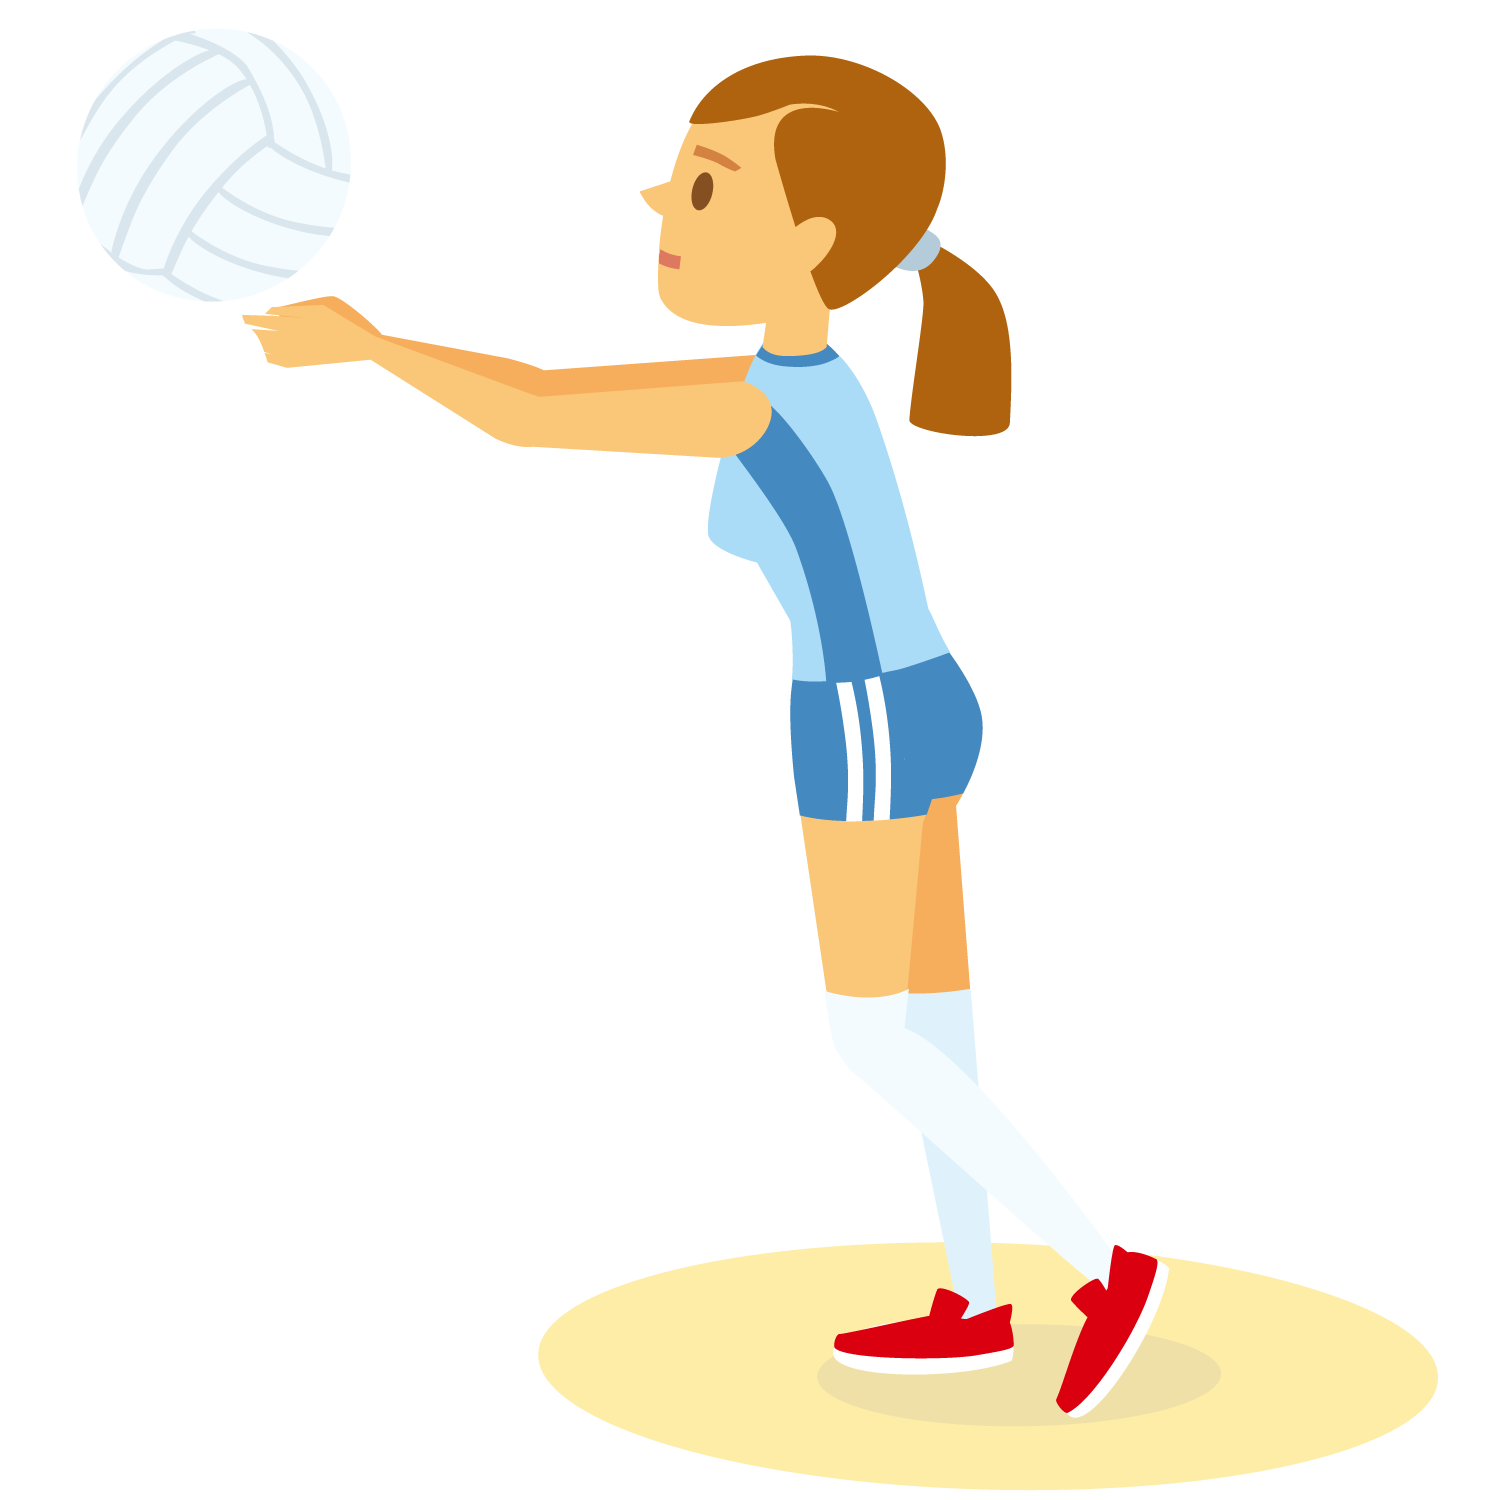 Volleyball and basketball clipart clipart royalty free Cartoon Illustration - Volleyball team girl 1500*1500 transprent Png ... clipart royalty free